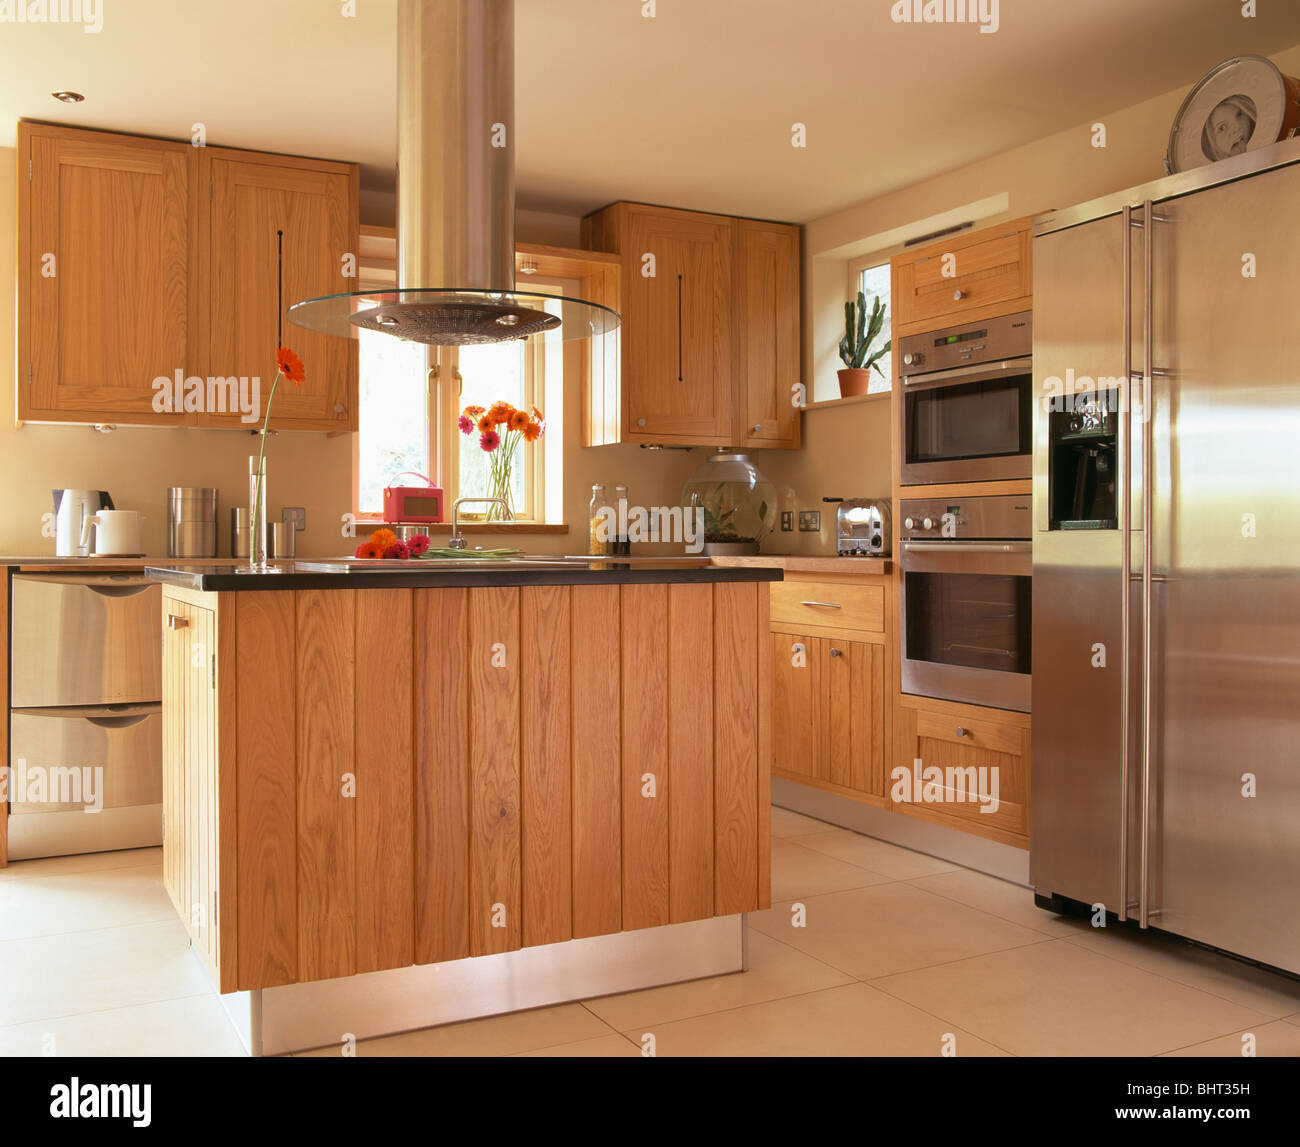 Island Units For Kitchens: Extractor Above Island Unit In Modern Kitchen With Fitted